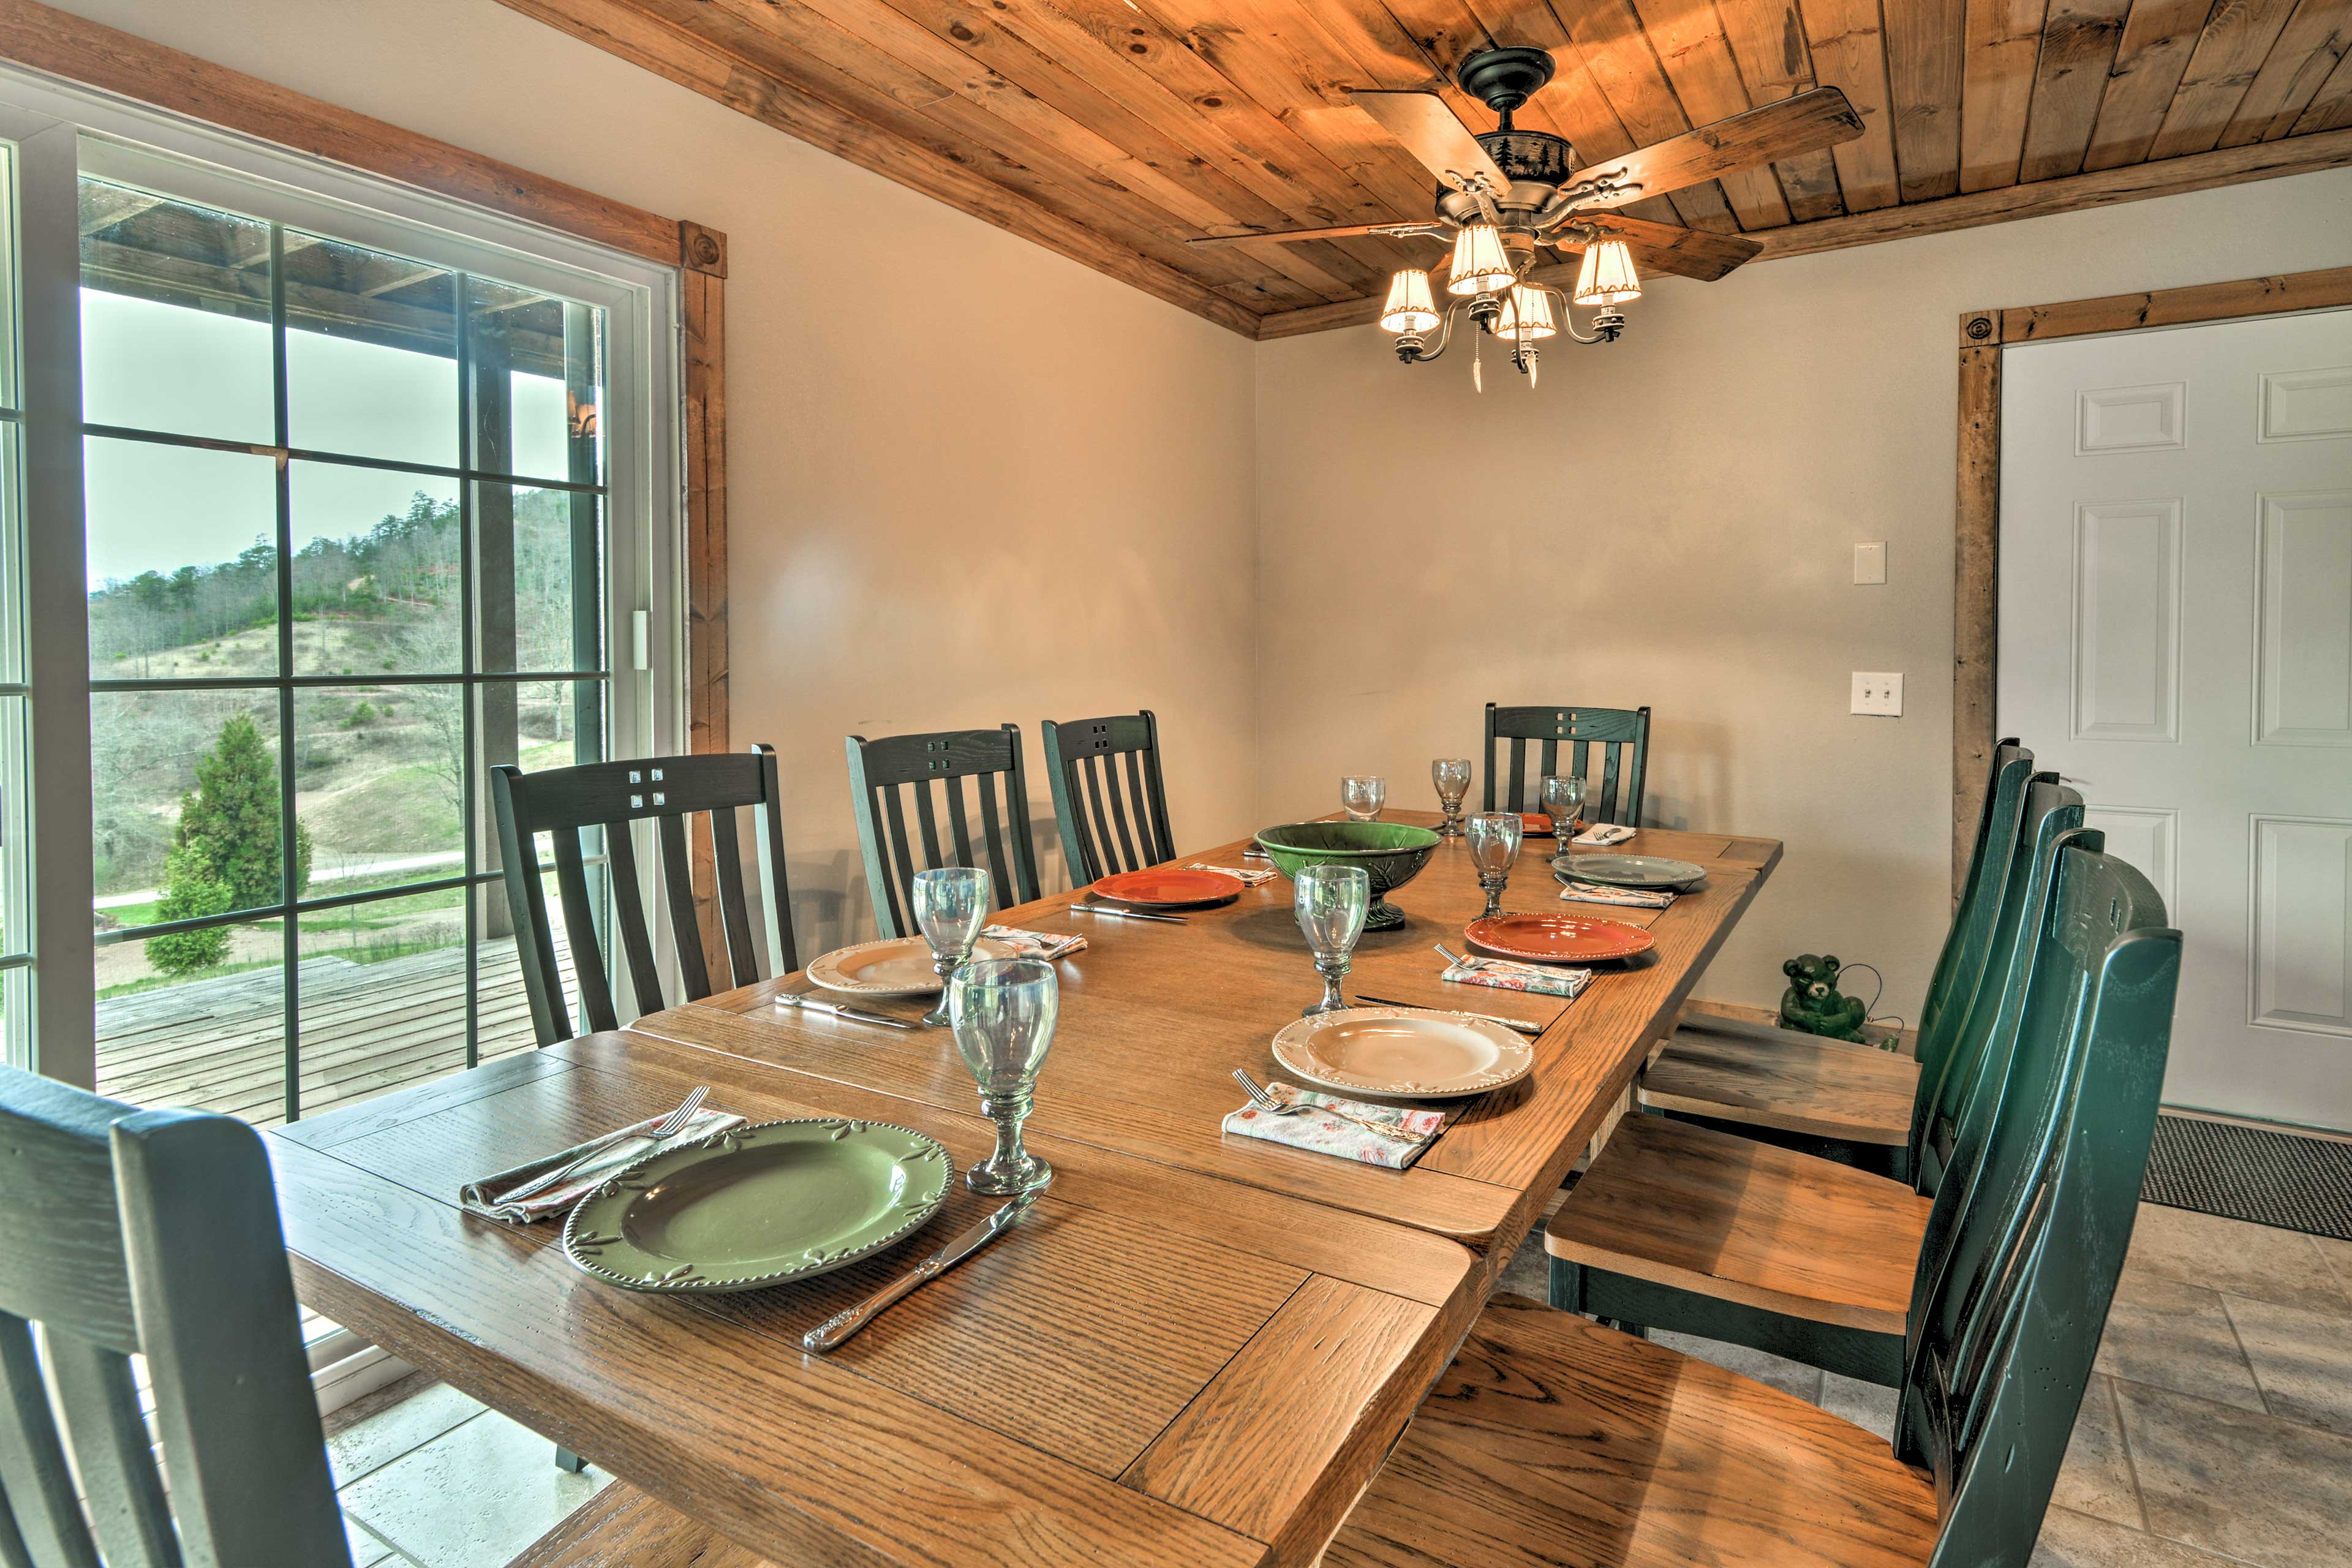 Share meals at the elegant dining table (featuring beautiful views!)